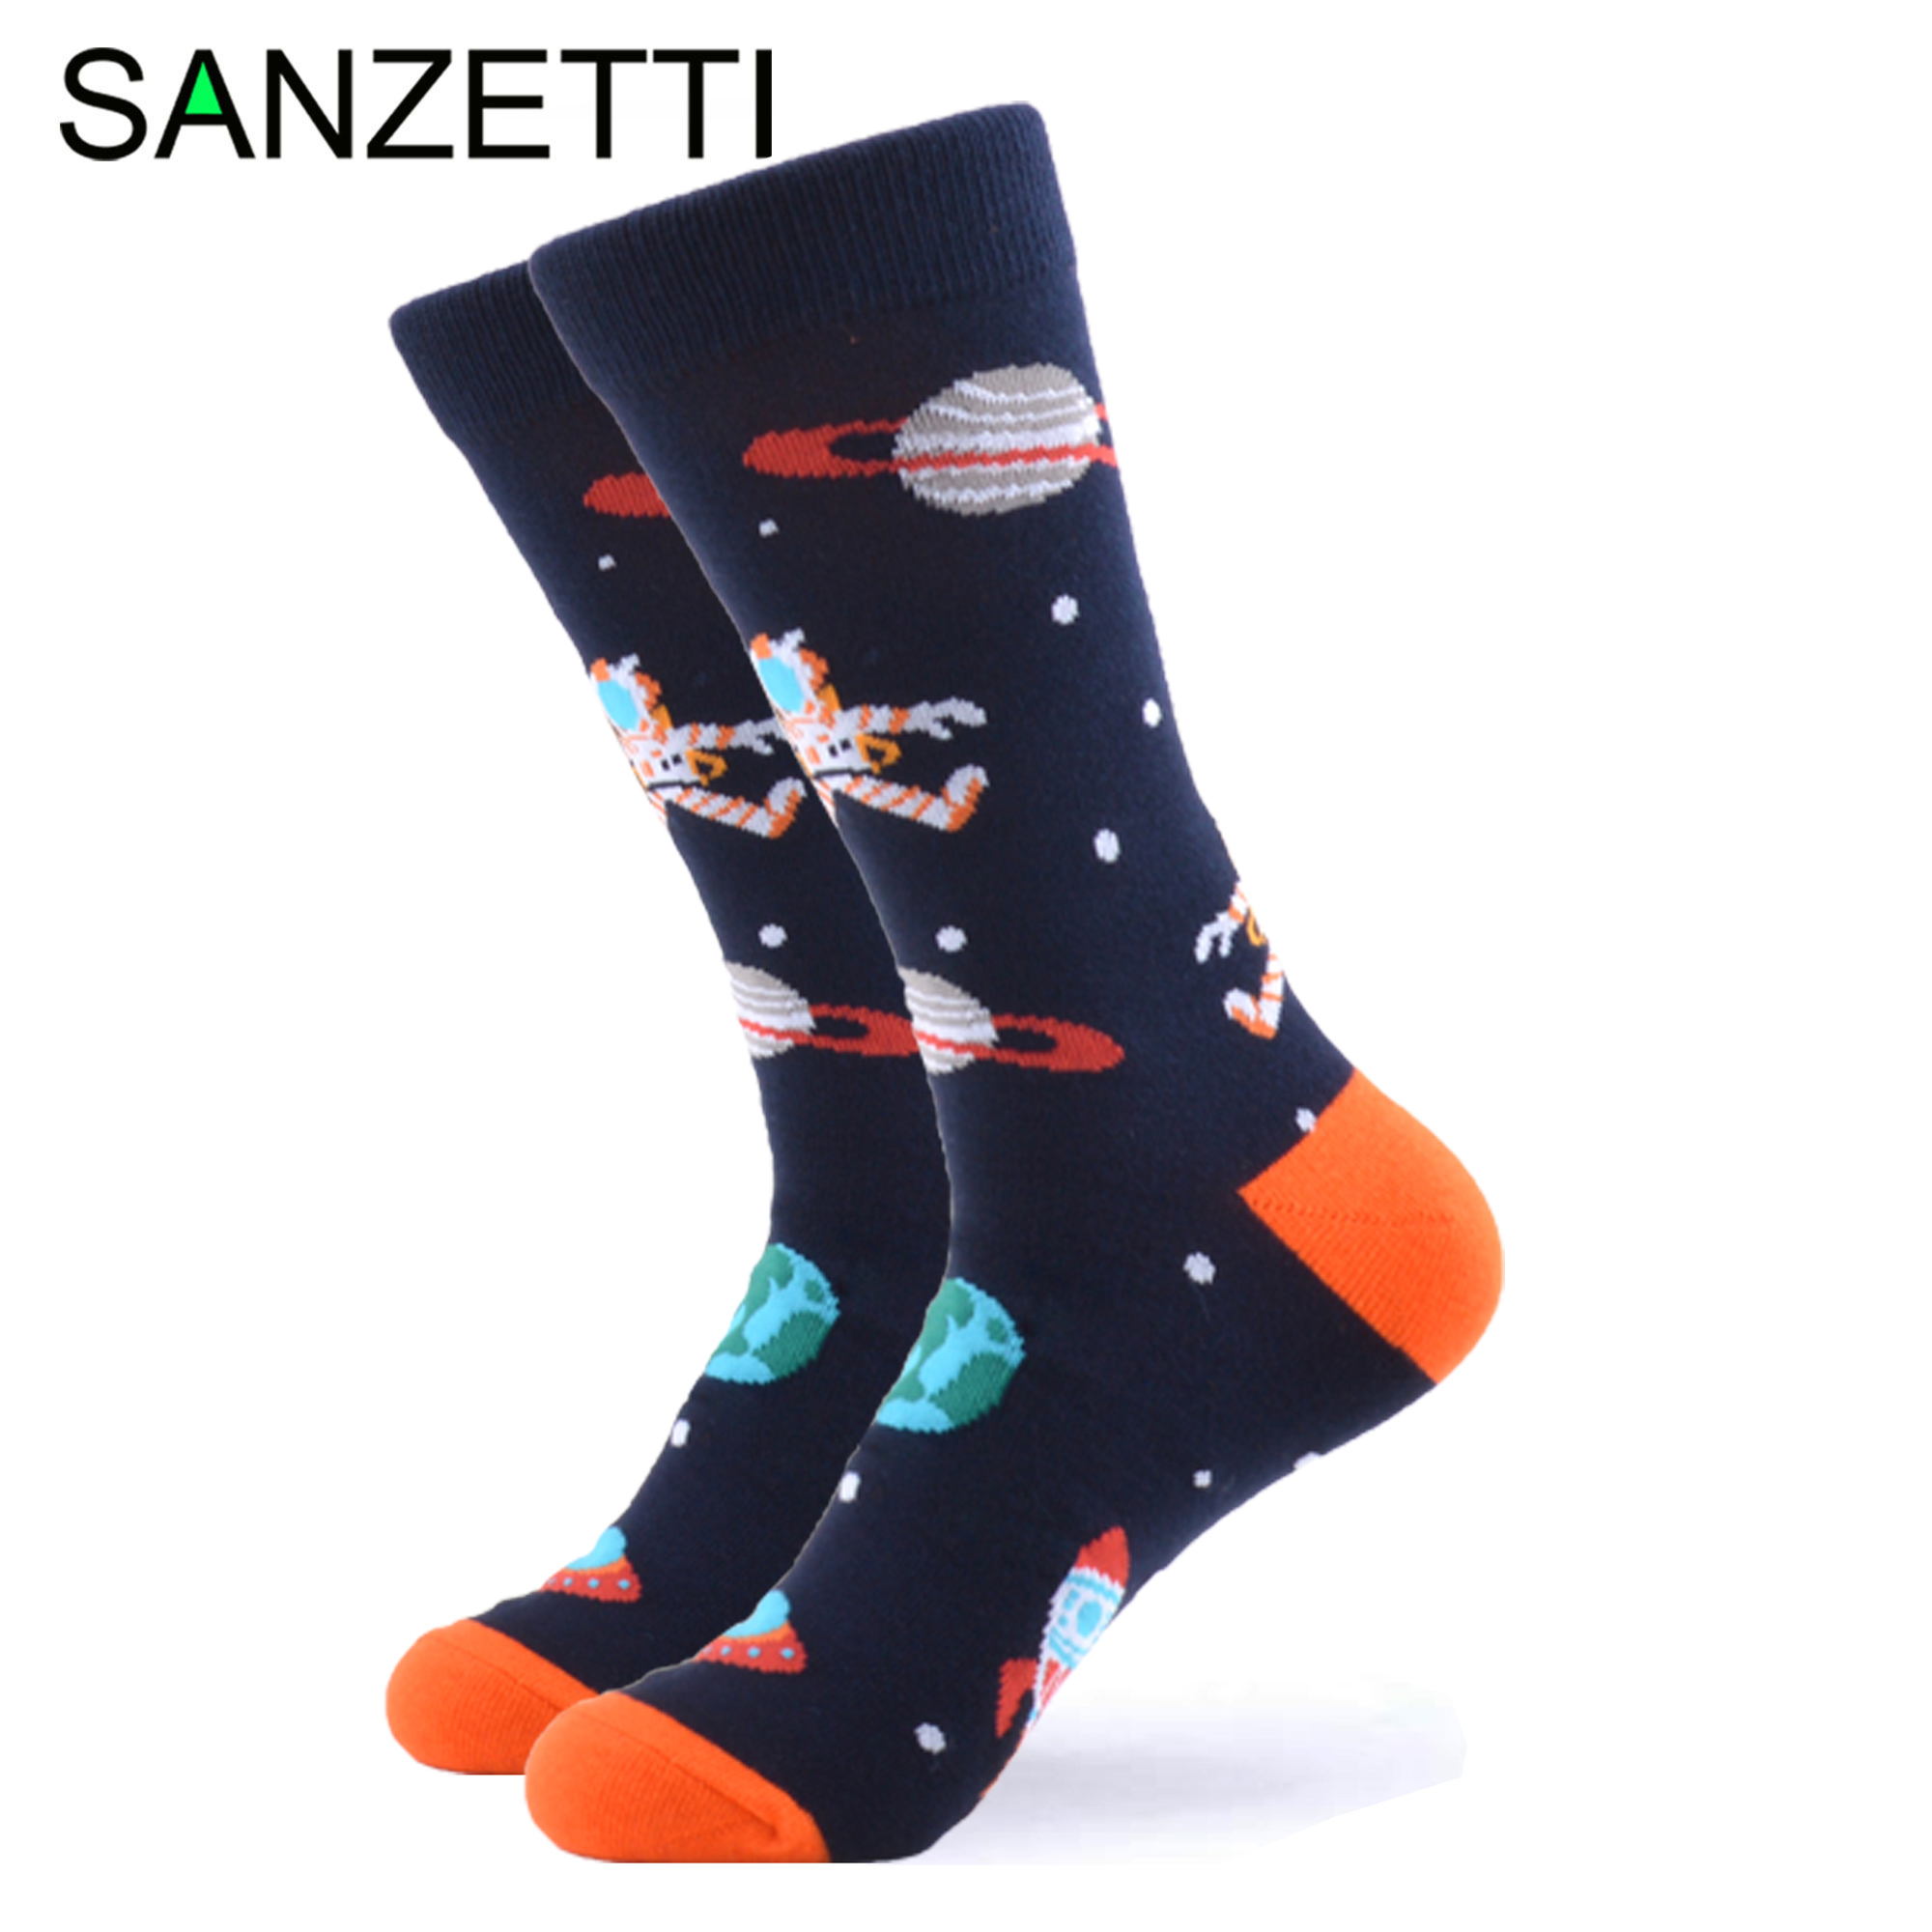 SANZETTI 1 Pair Happy Men's Socks Starry Sky Colorful Comfortable Combed Cotton Animal Funny Pattern Gift Wedding Dress Gym Sock